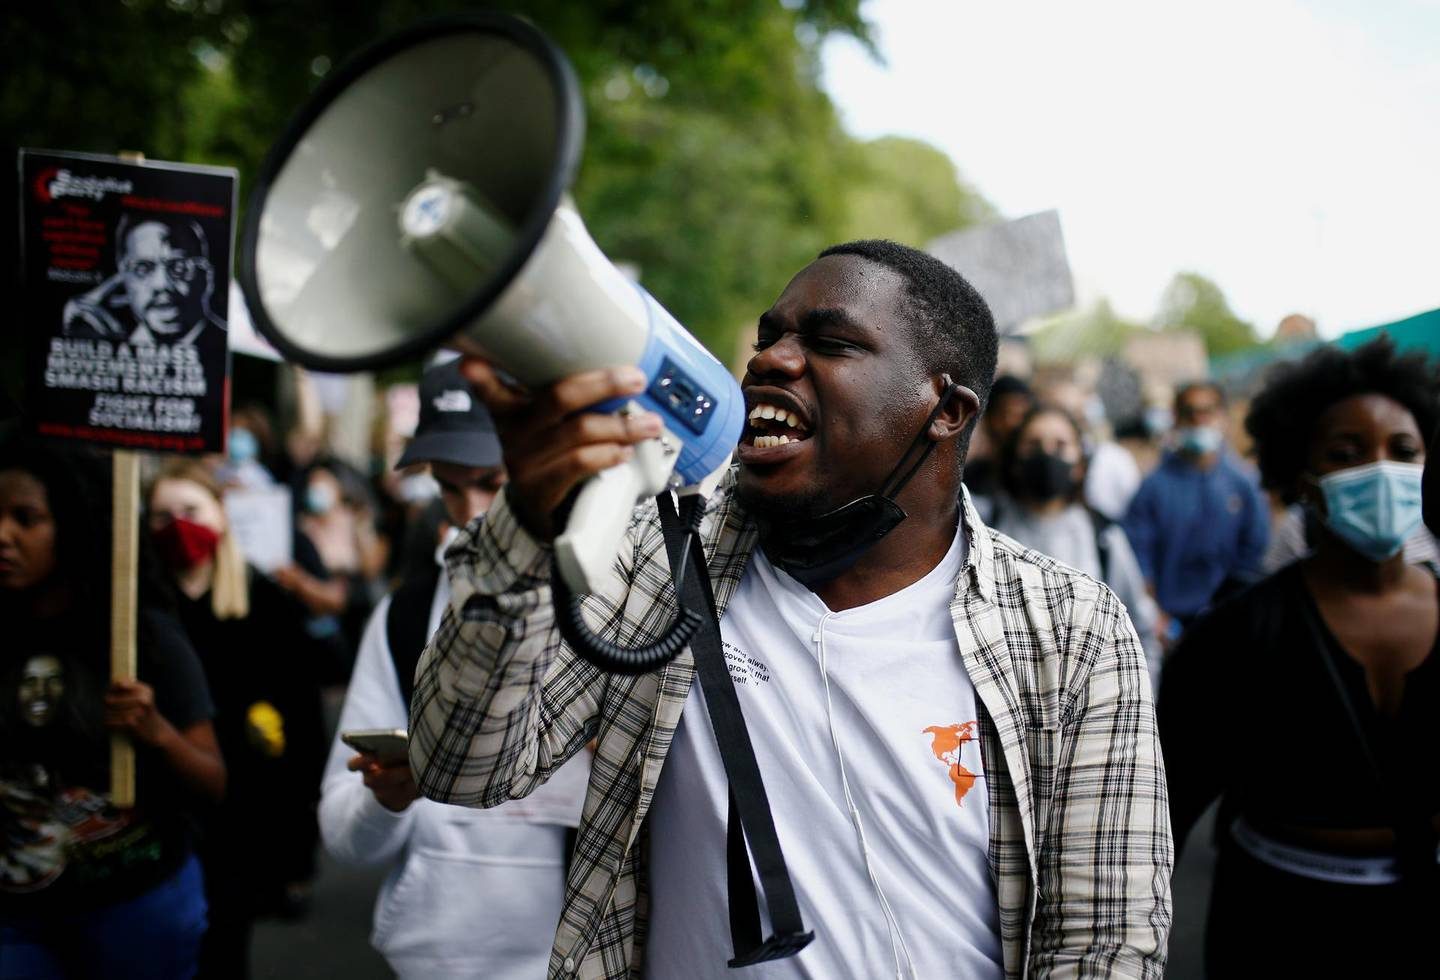 A man uses a megaphone as demonstrators march to Westminster during a Black Lives Matter protest, following the death of George Floyd in Minneapolis police custody, in London, Britain June 21, 2020. REUTERS/Henry Nicholls